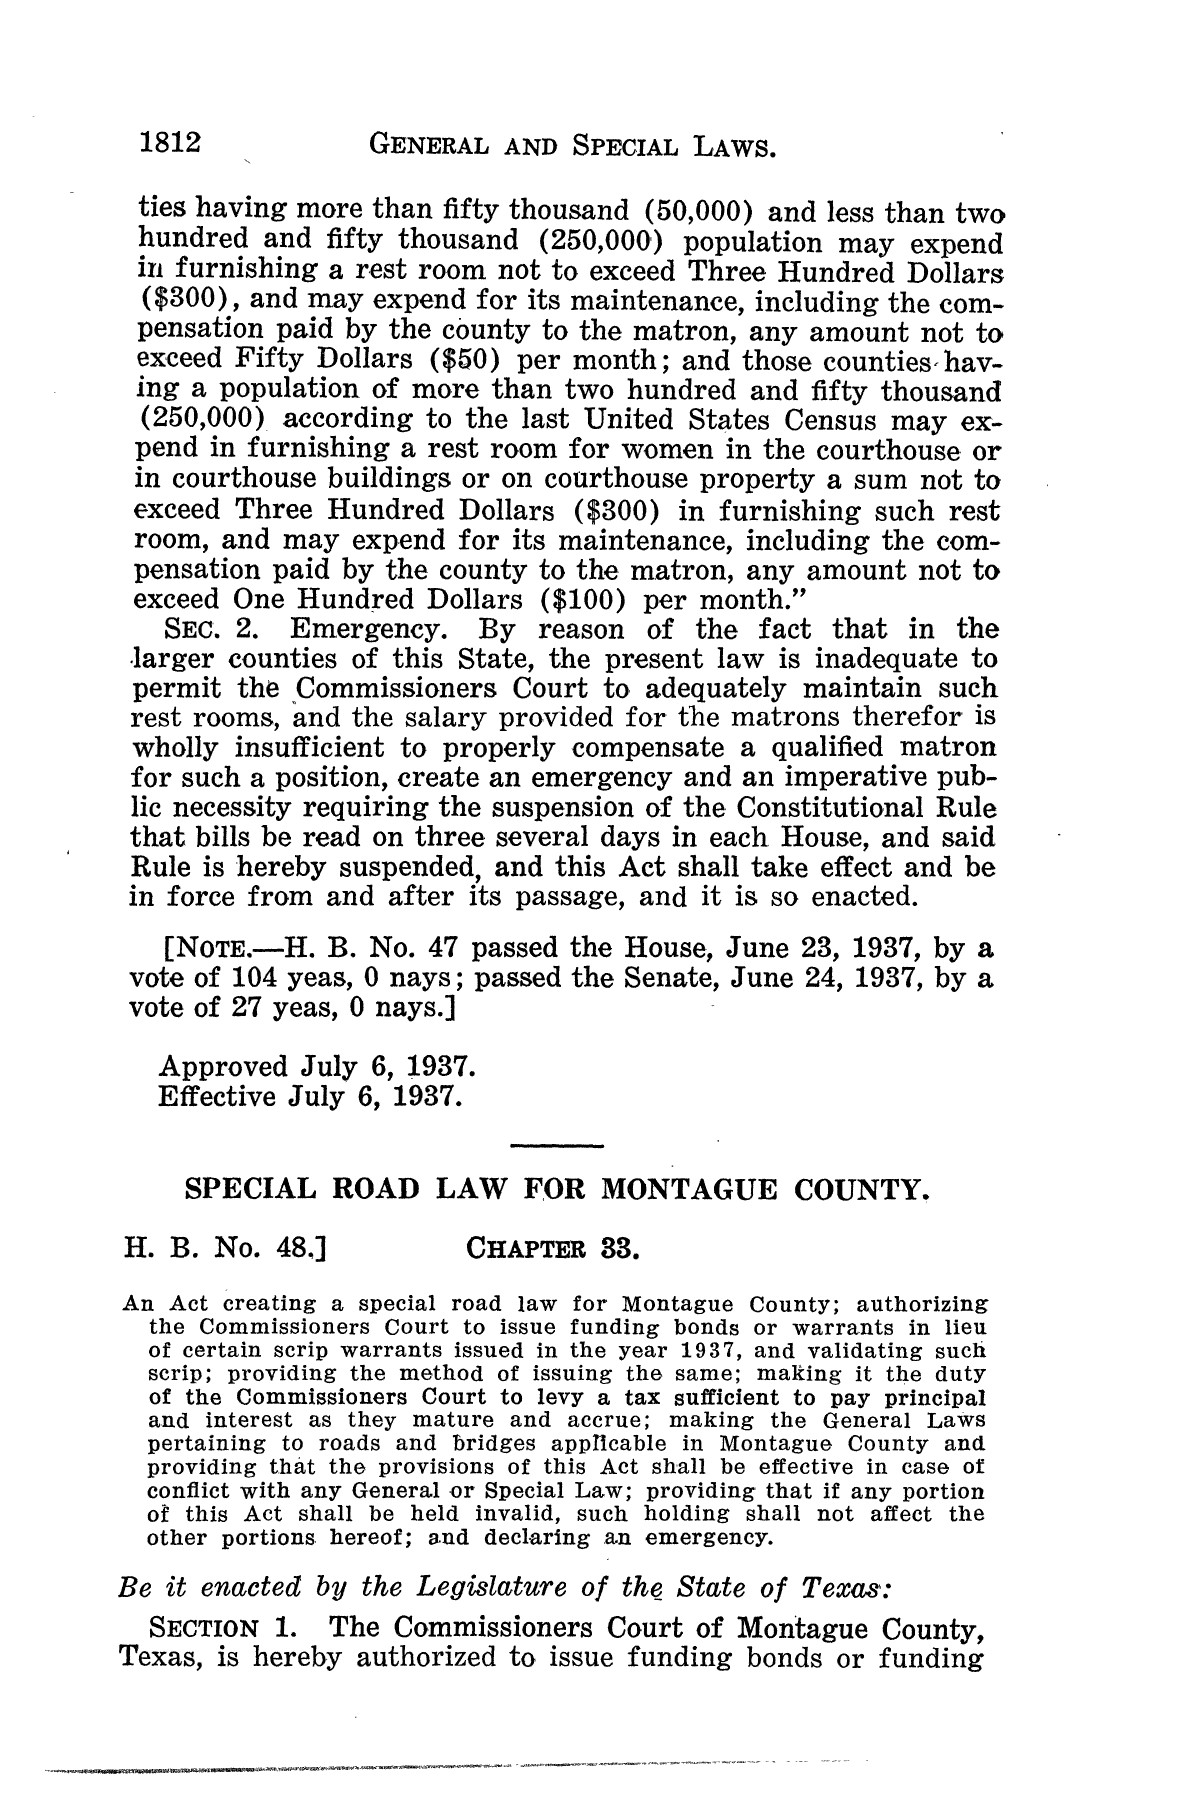 The Laws of Texas, 1937-1939 [Volume 31]                                                                                                      [Sequence #]: 84 of 1313